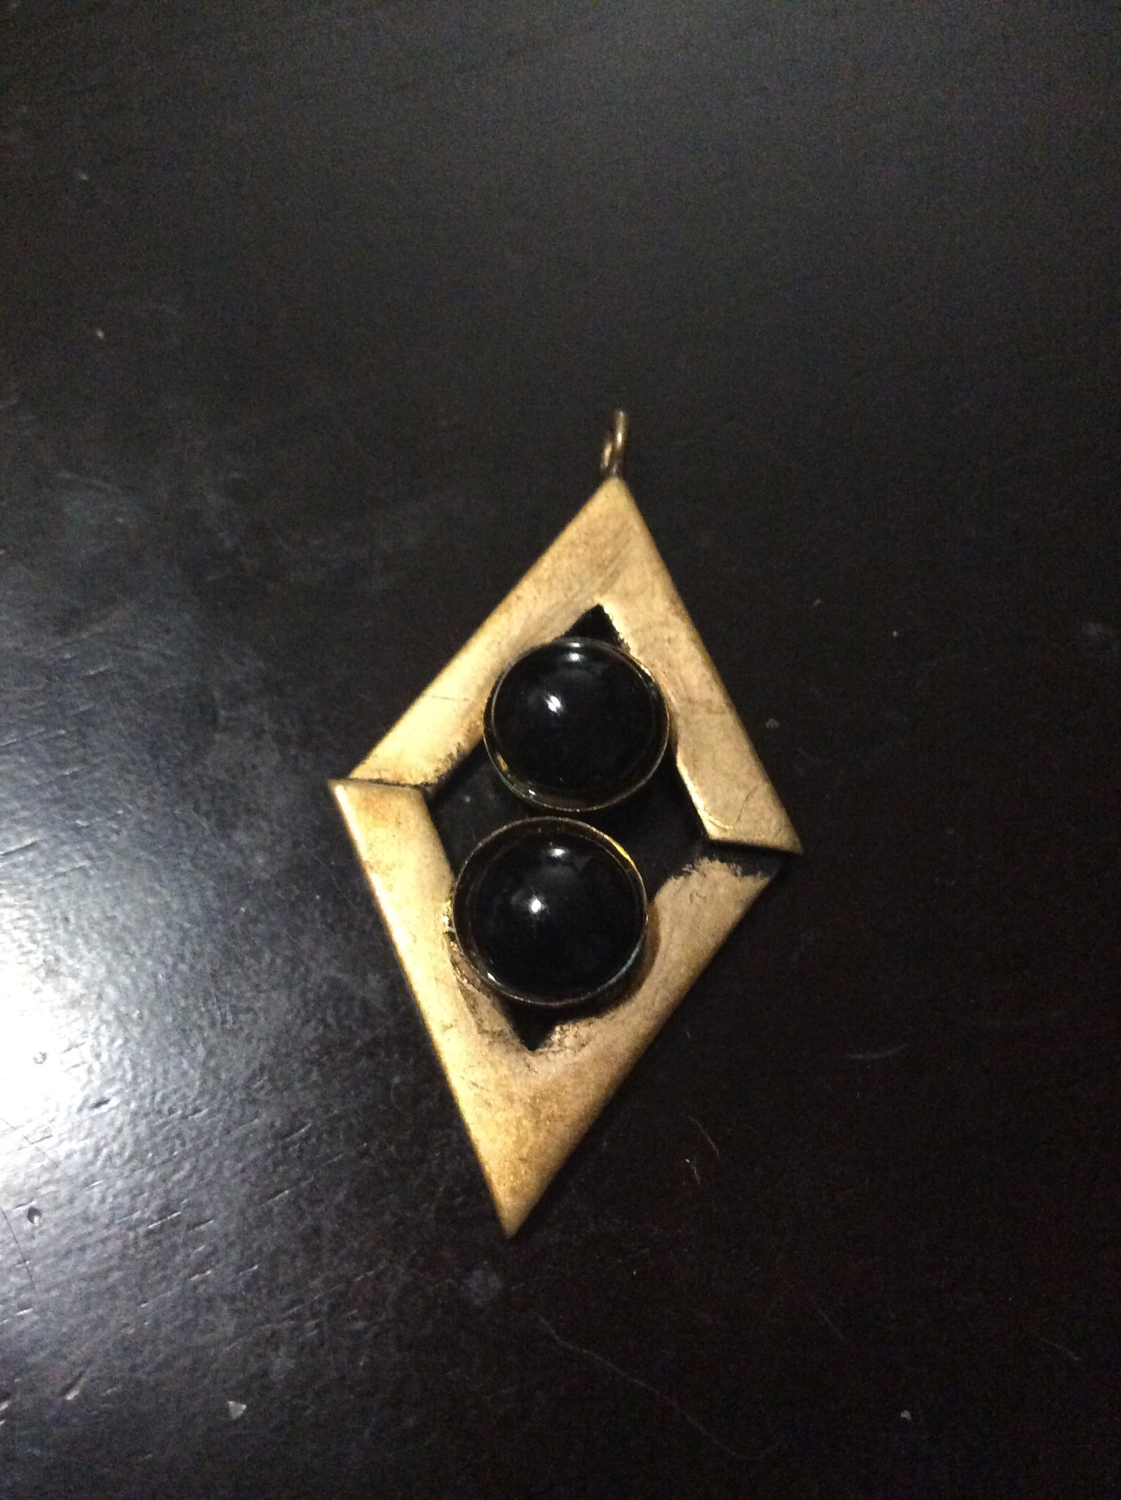 Small Amulet Charm connect with ancient Egyptian Anointings and spiritual powers